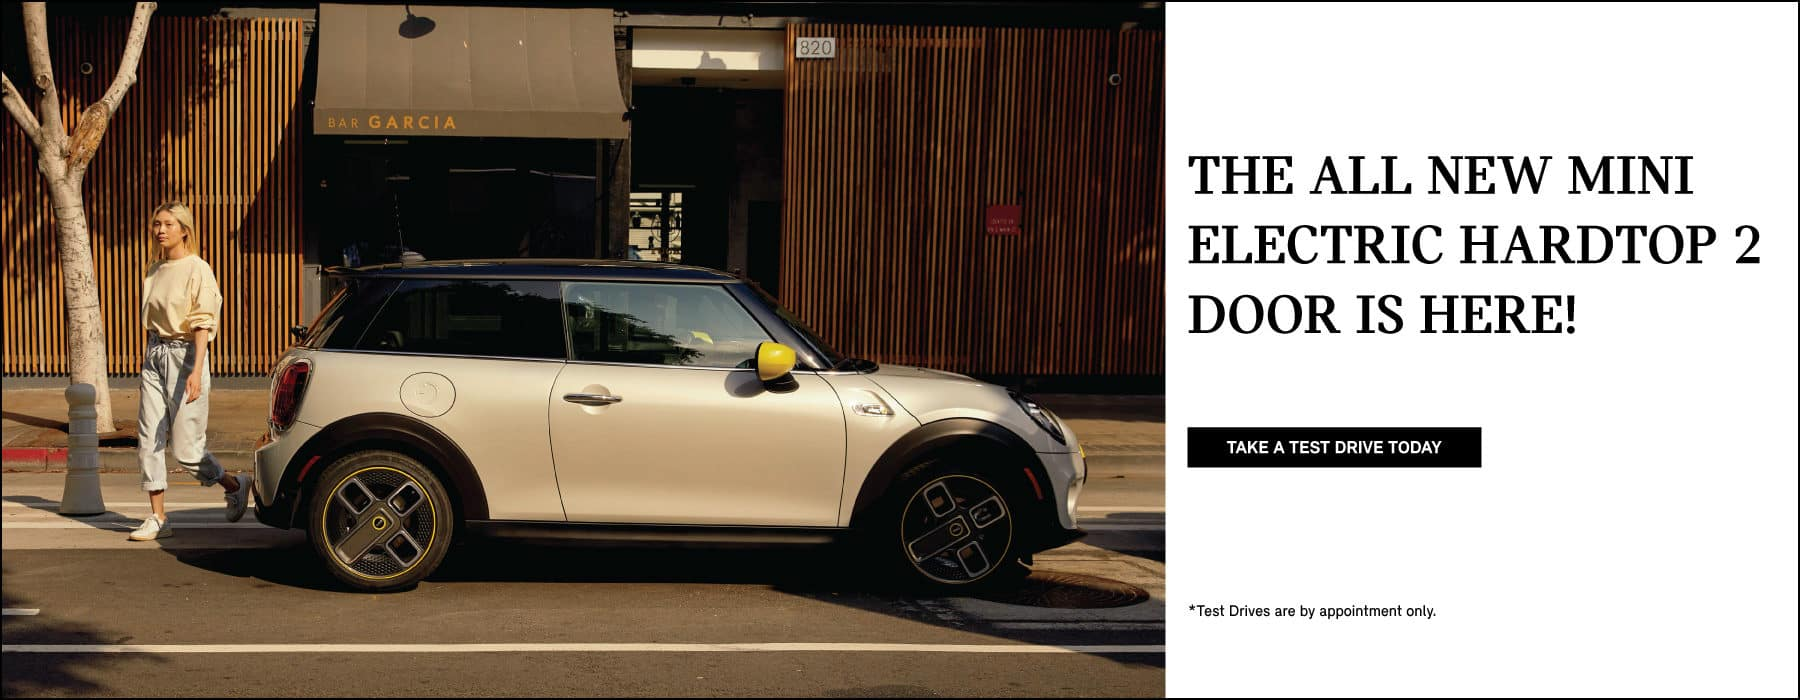 FOR A LIMITED TIME THE NEW MINI ELECTRIC HARDTOP 2 DOOR IS HERE! TAKE A TEST DRIVE TODAY BUTTON. SEE DEALER FOR COMPLETE DETAILS.